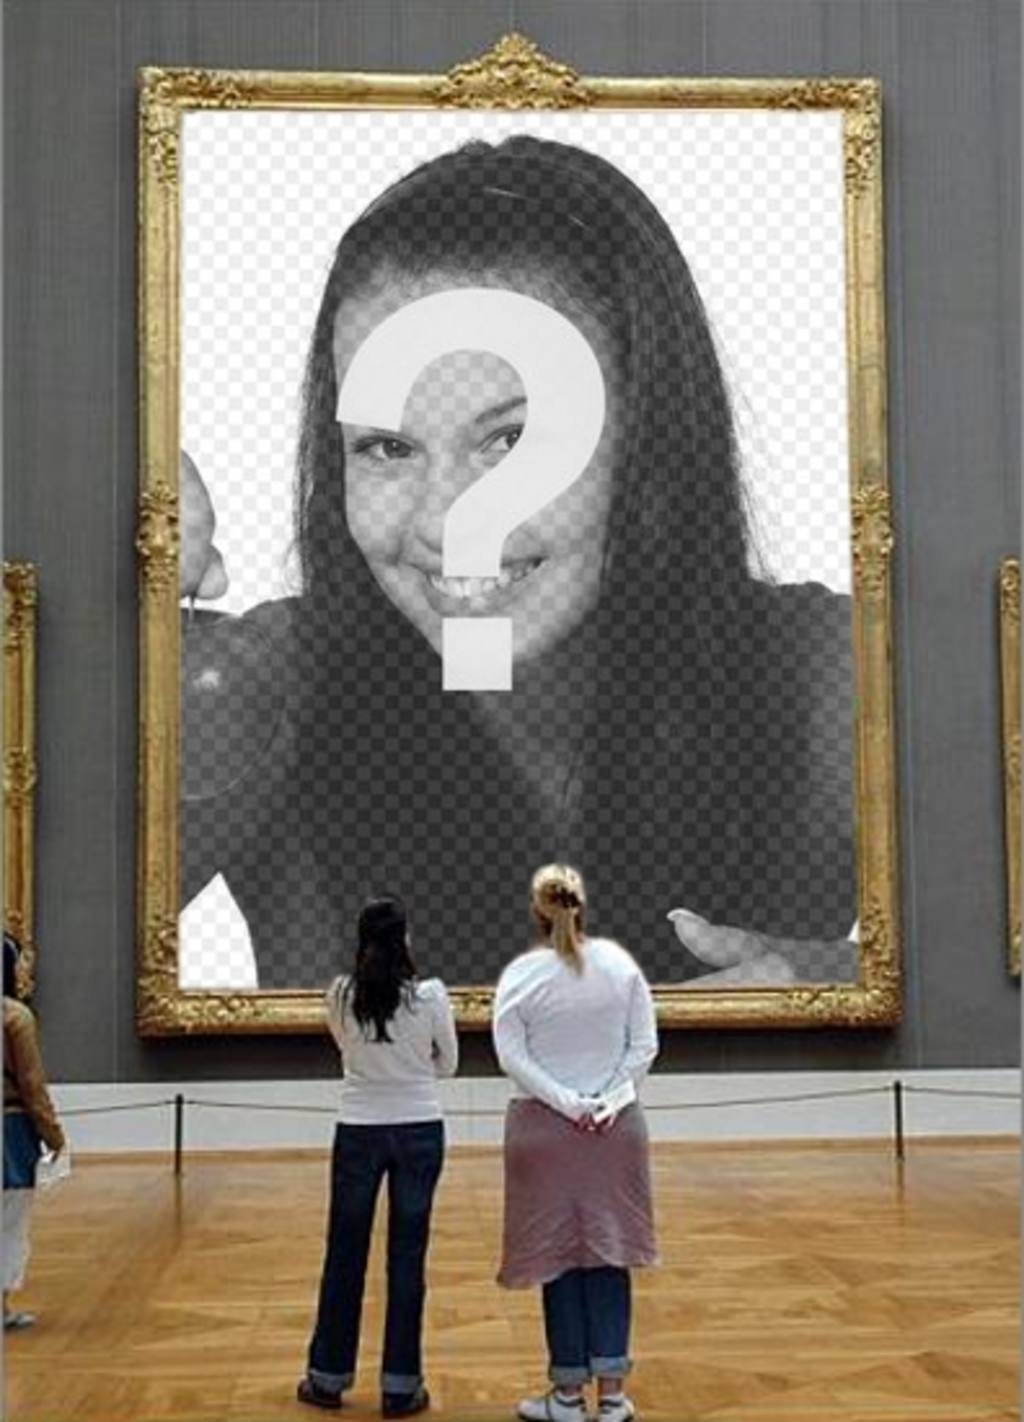 Photomontage to put your picture in a picture of a museum observed by two girls